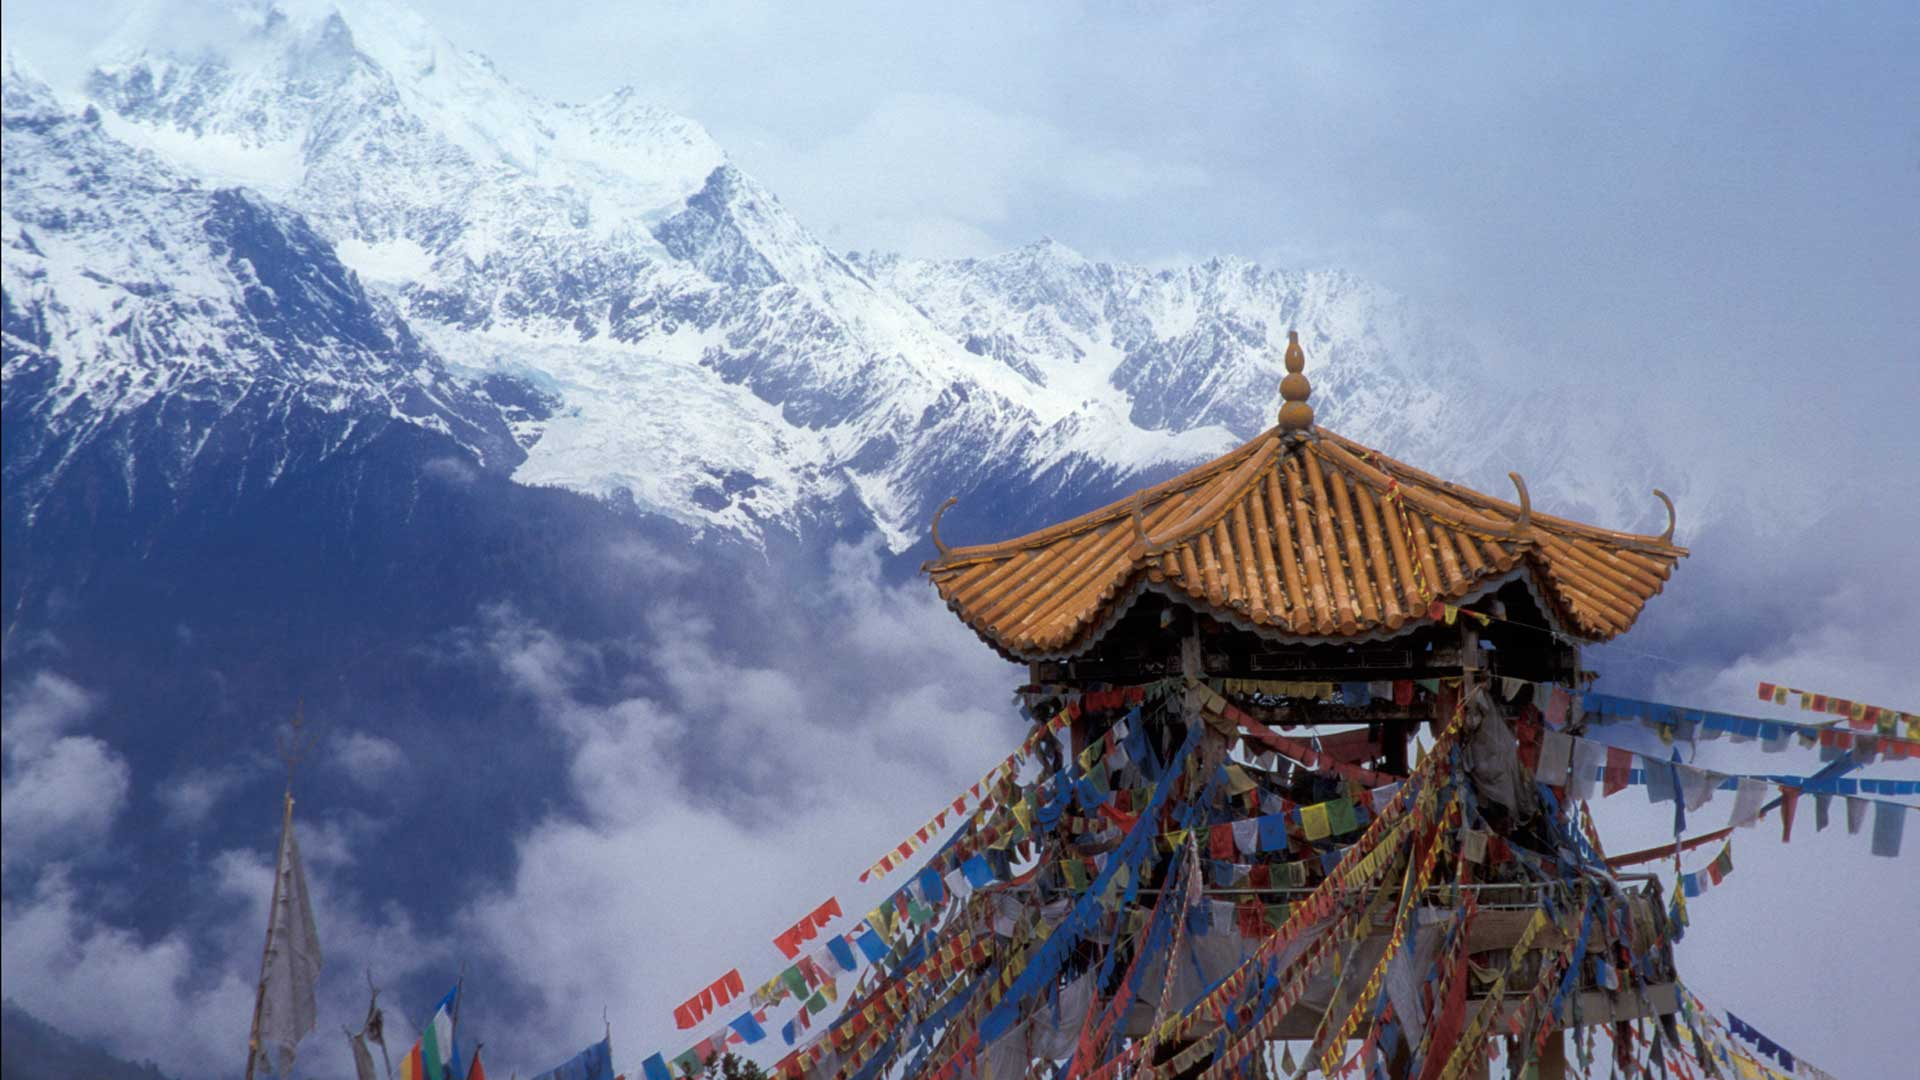 Praying flags and pavilion with Meili Snow Mountain (eastern Himalaya) in Yunnan, China with GeoEx